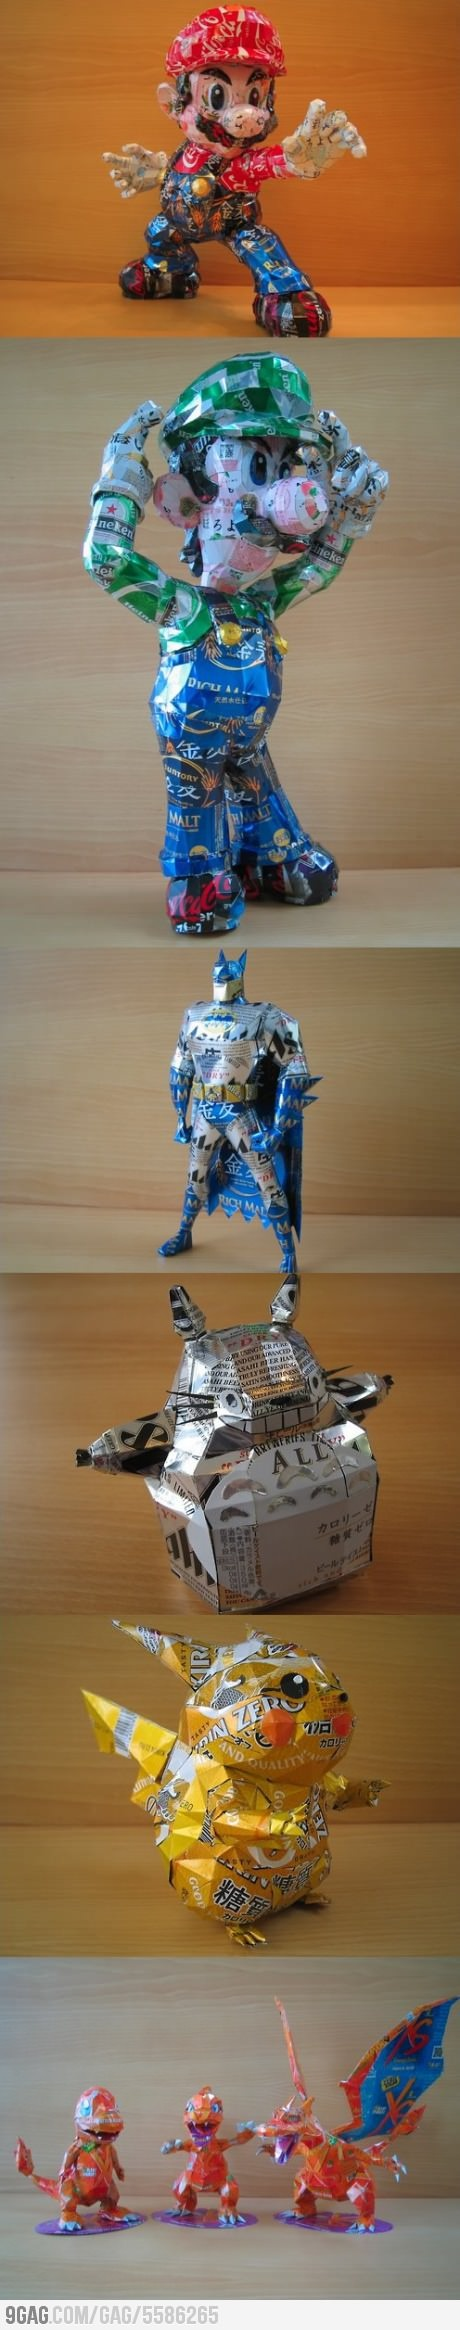 Awesome characters made out of aluminum cans